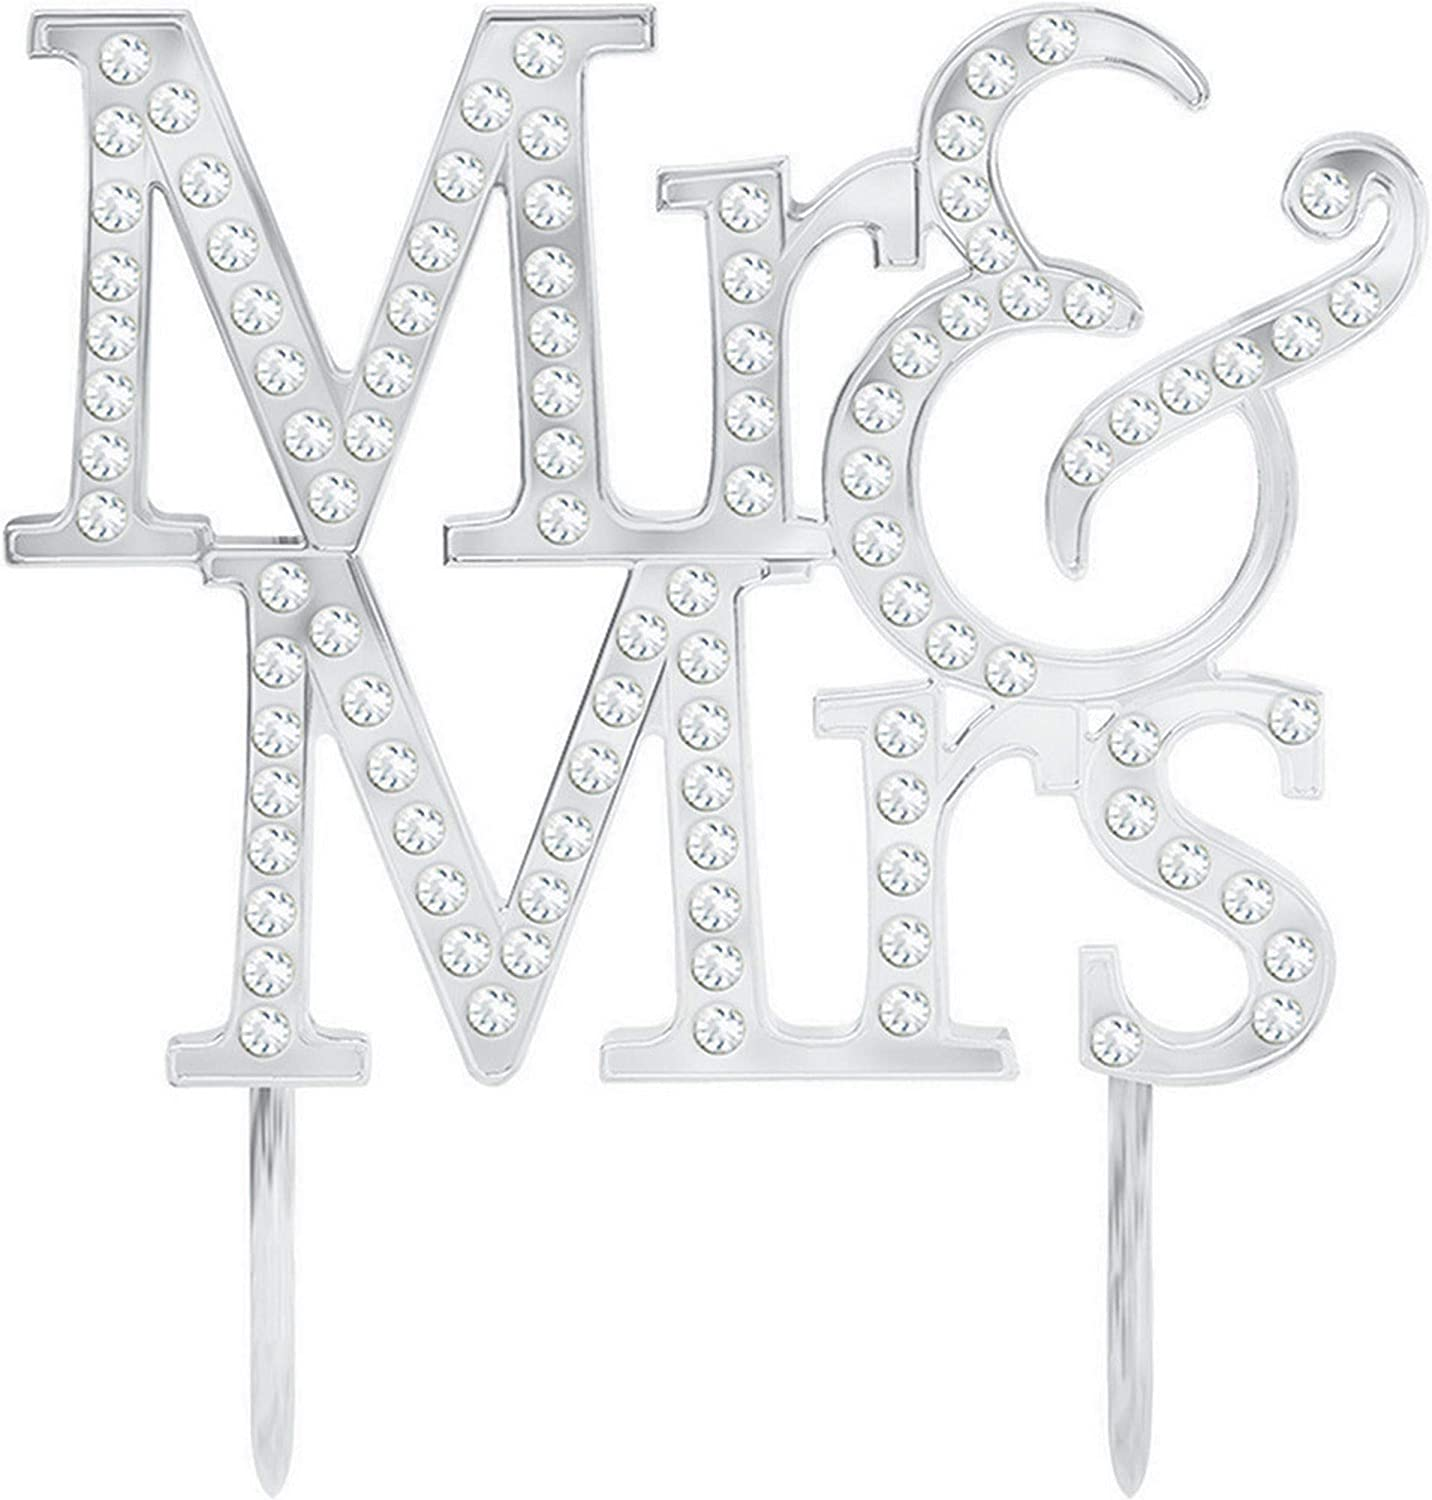 amscan 100008 Silver Mr /& Mrs Cake Topper with Diamond Details-1 Pc